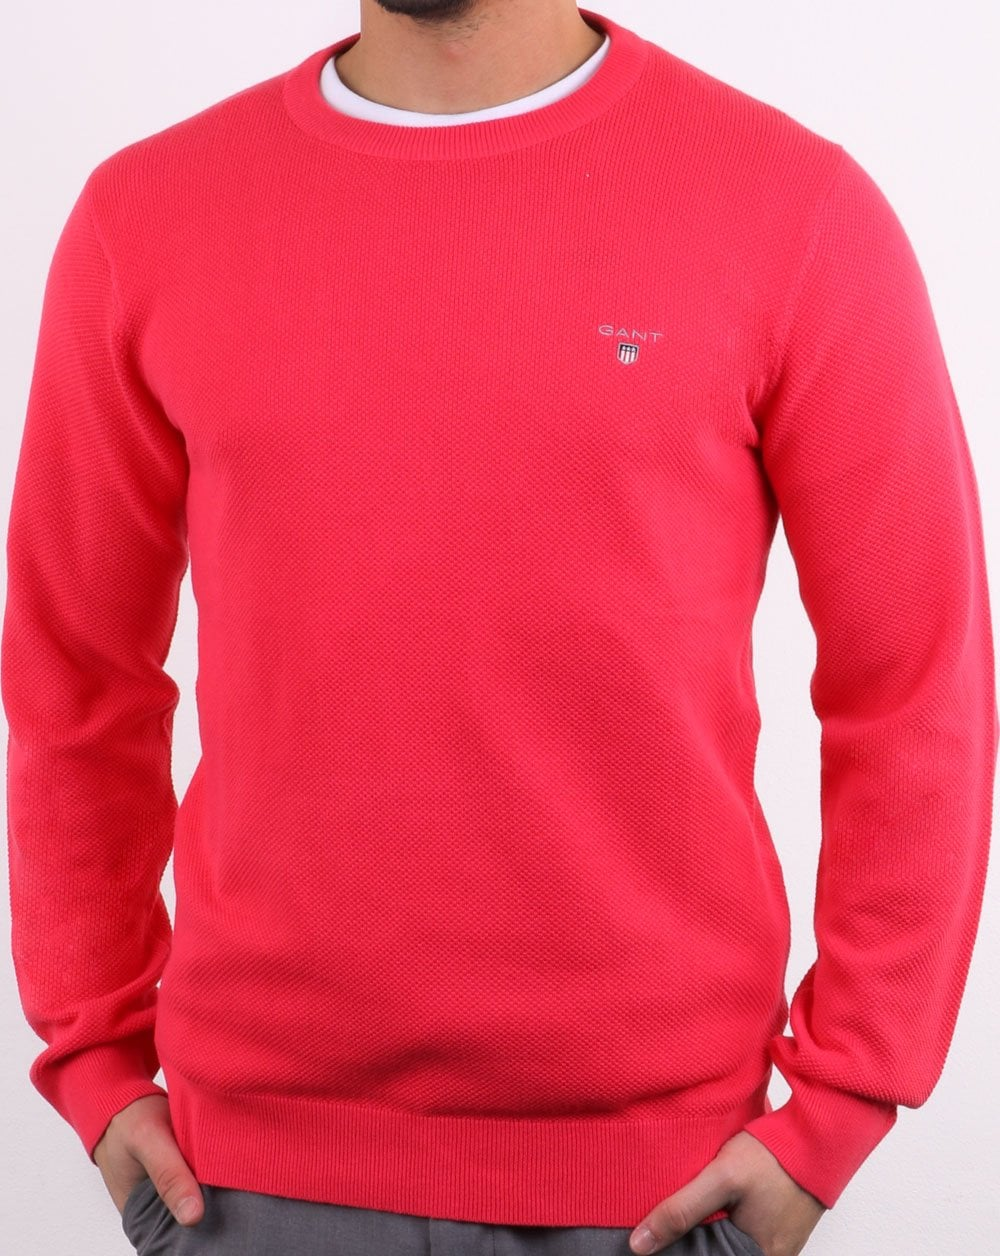 where to buy skate shoes the best attitude Gant Pique Crew Neck Jumper Watermelon Red